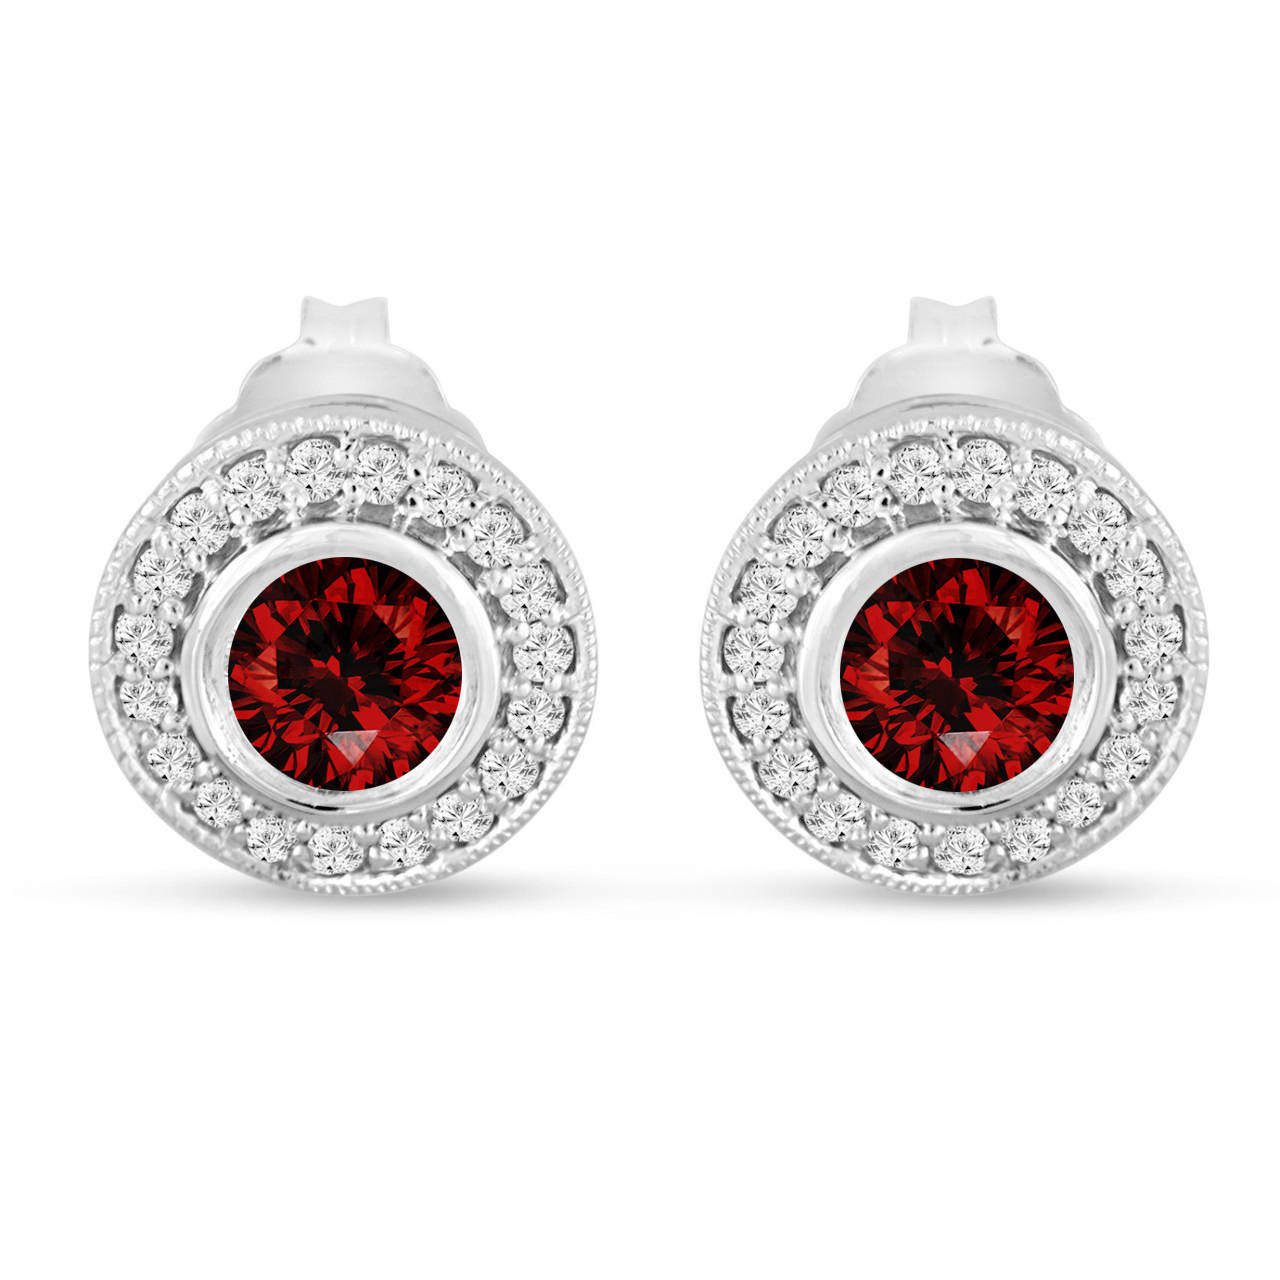 1fa816ade6aaa Red Diamond Stud Earrings, Fancy Red Diamonds Halo Earrings, Diamond  Earrings 14K White Gold 1.08 Carat Bezel And Micro Pave Handmade Unique